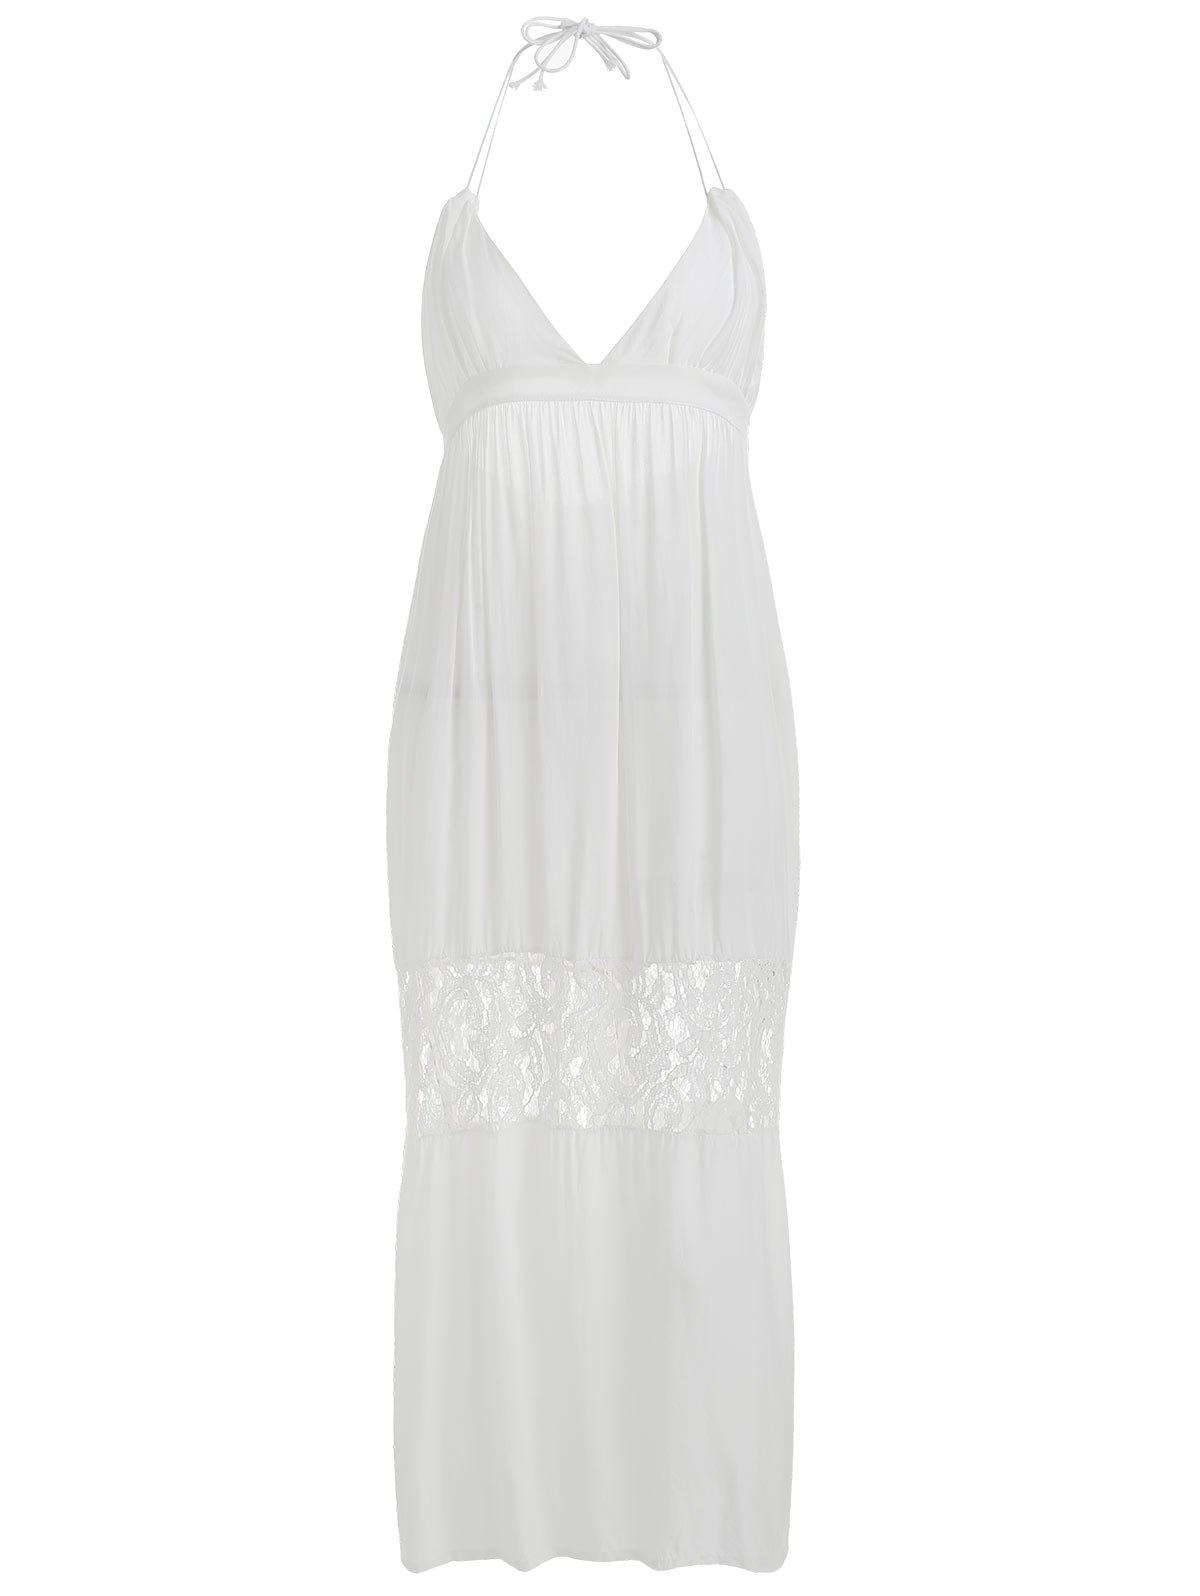 Beach Backless Lace Panel Maxi Dress - WHITE L